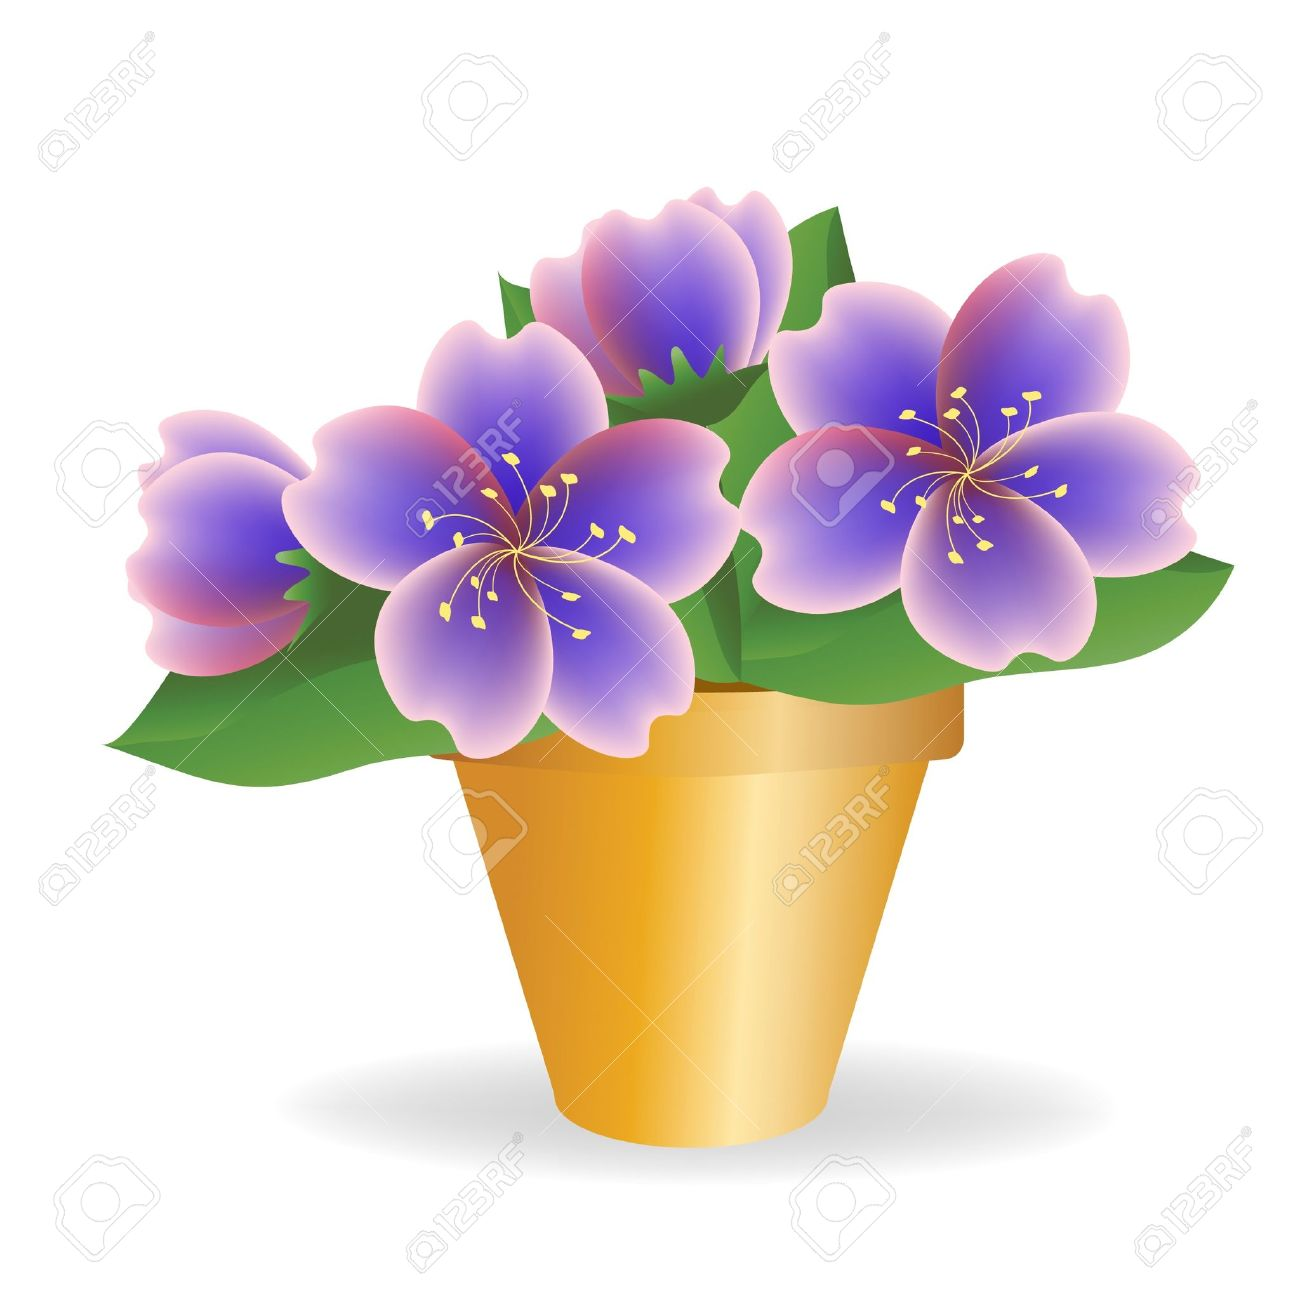 Pot Plant clipart #1, Download drawings